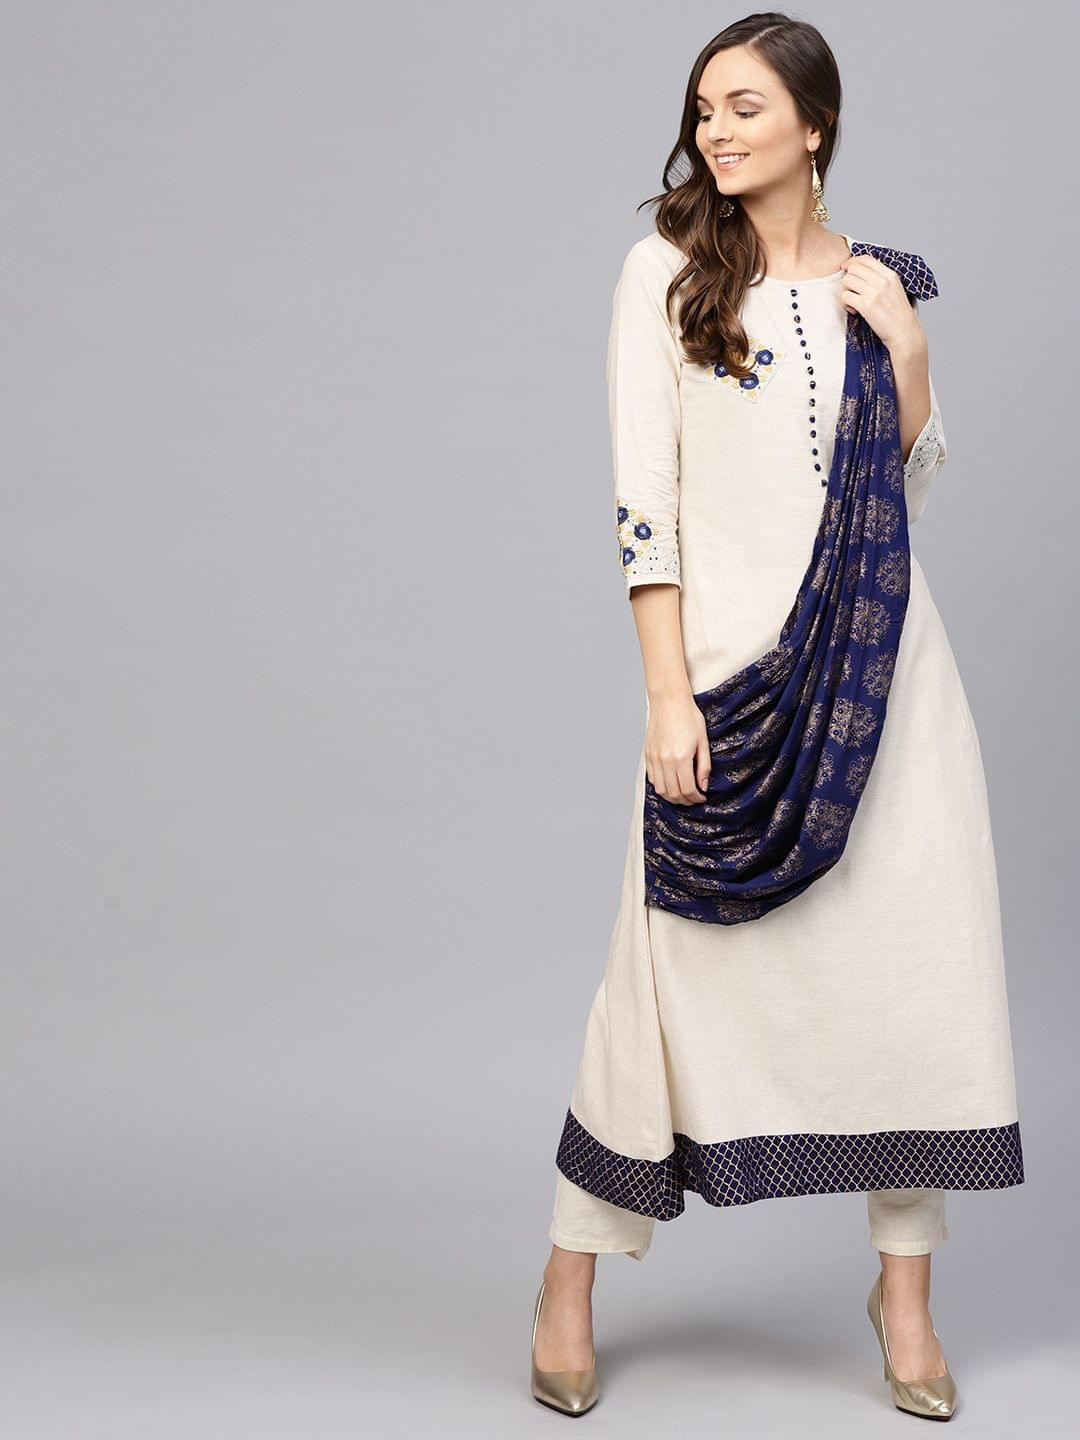 Yufta Women Off-White & Navy Blue Solid A-Line Kurta with Attached Dupatta